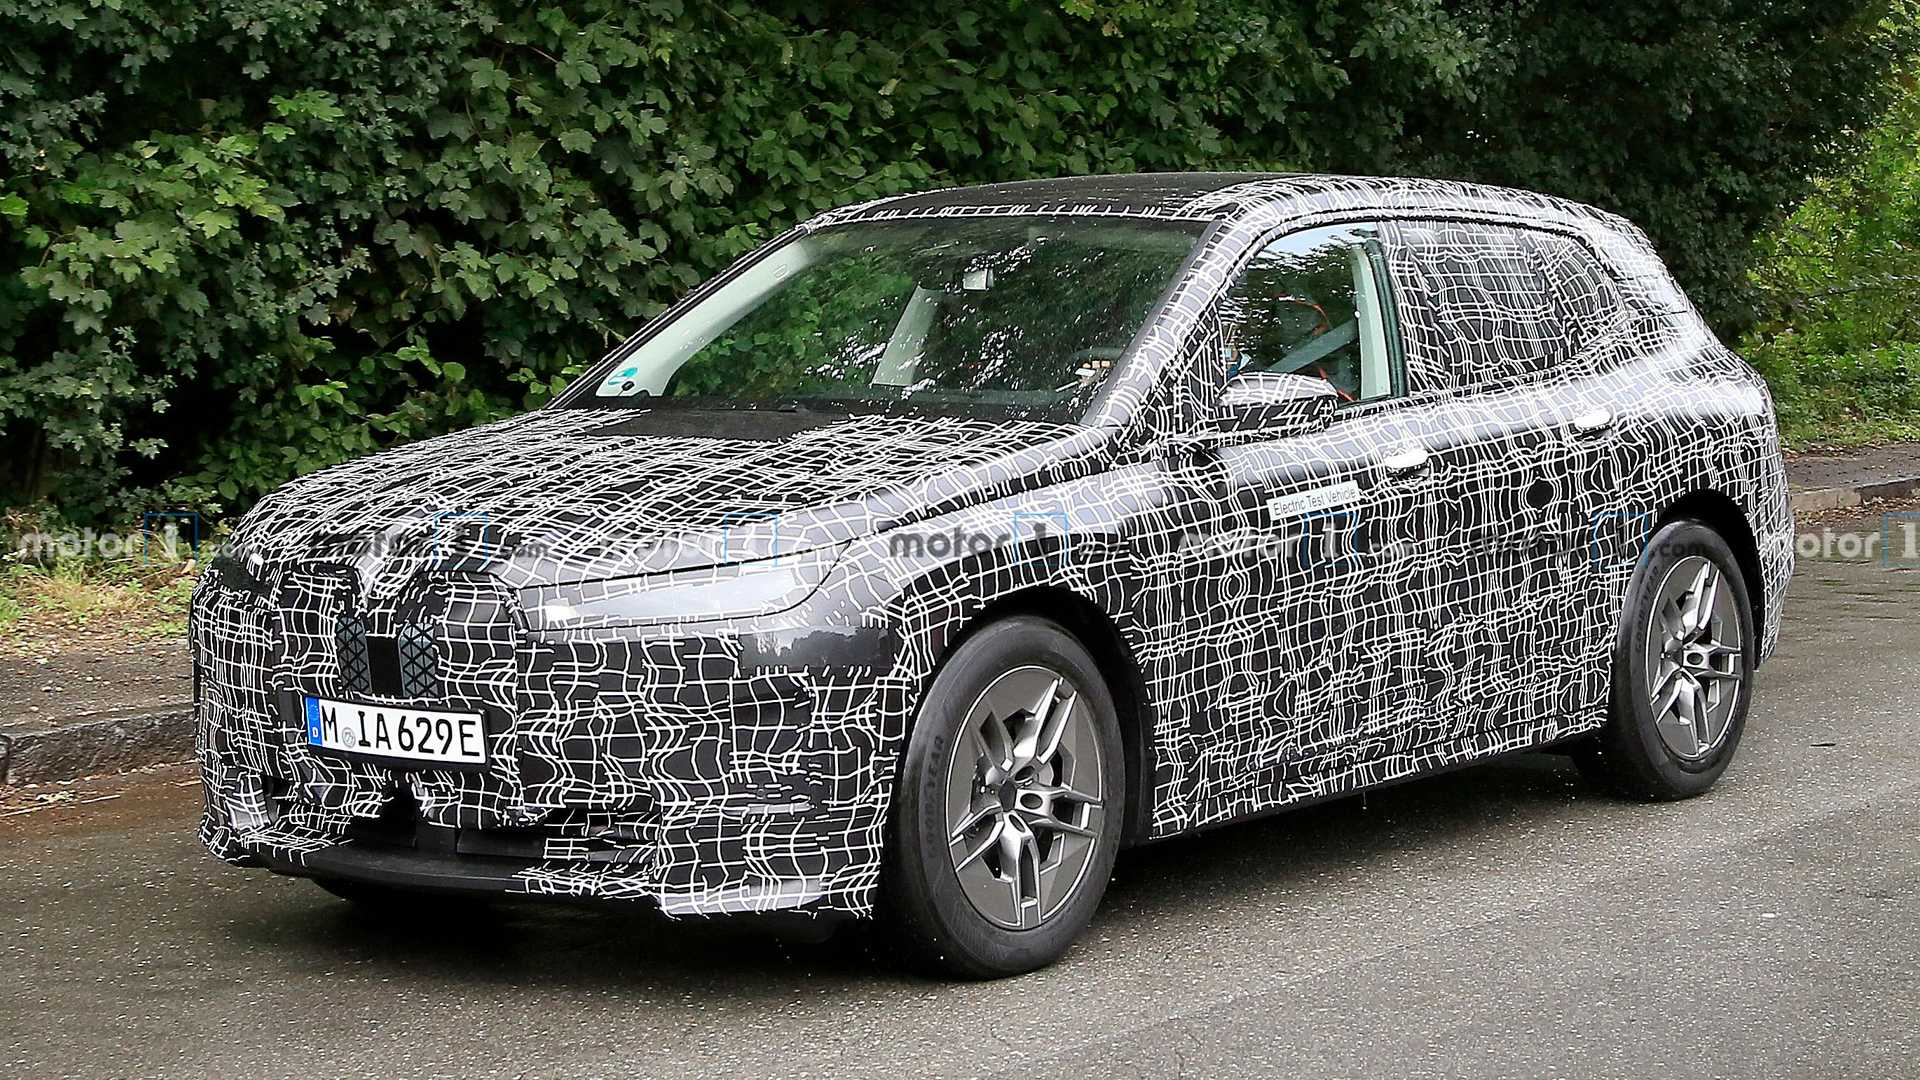 BMW iX Fully Electric SUV To Top $100,000: Report